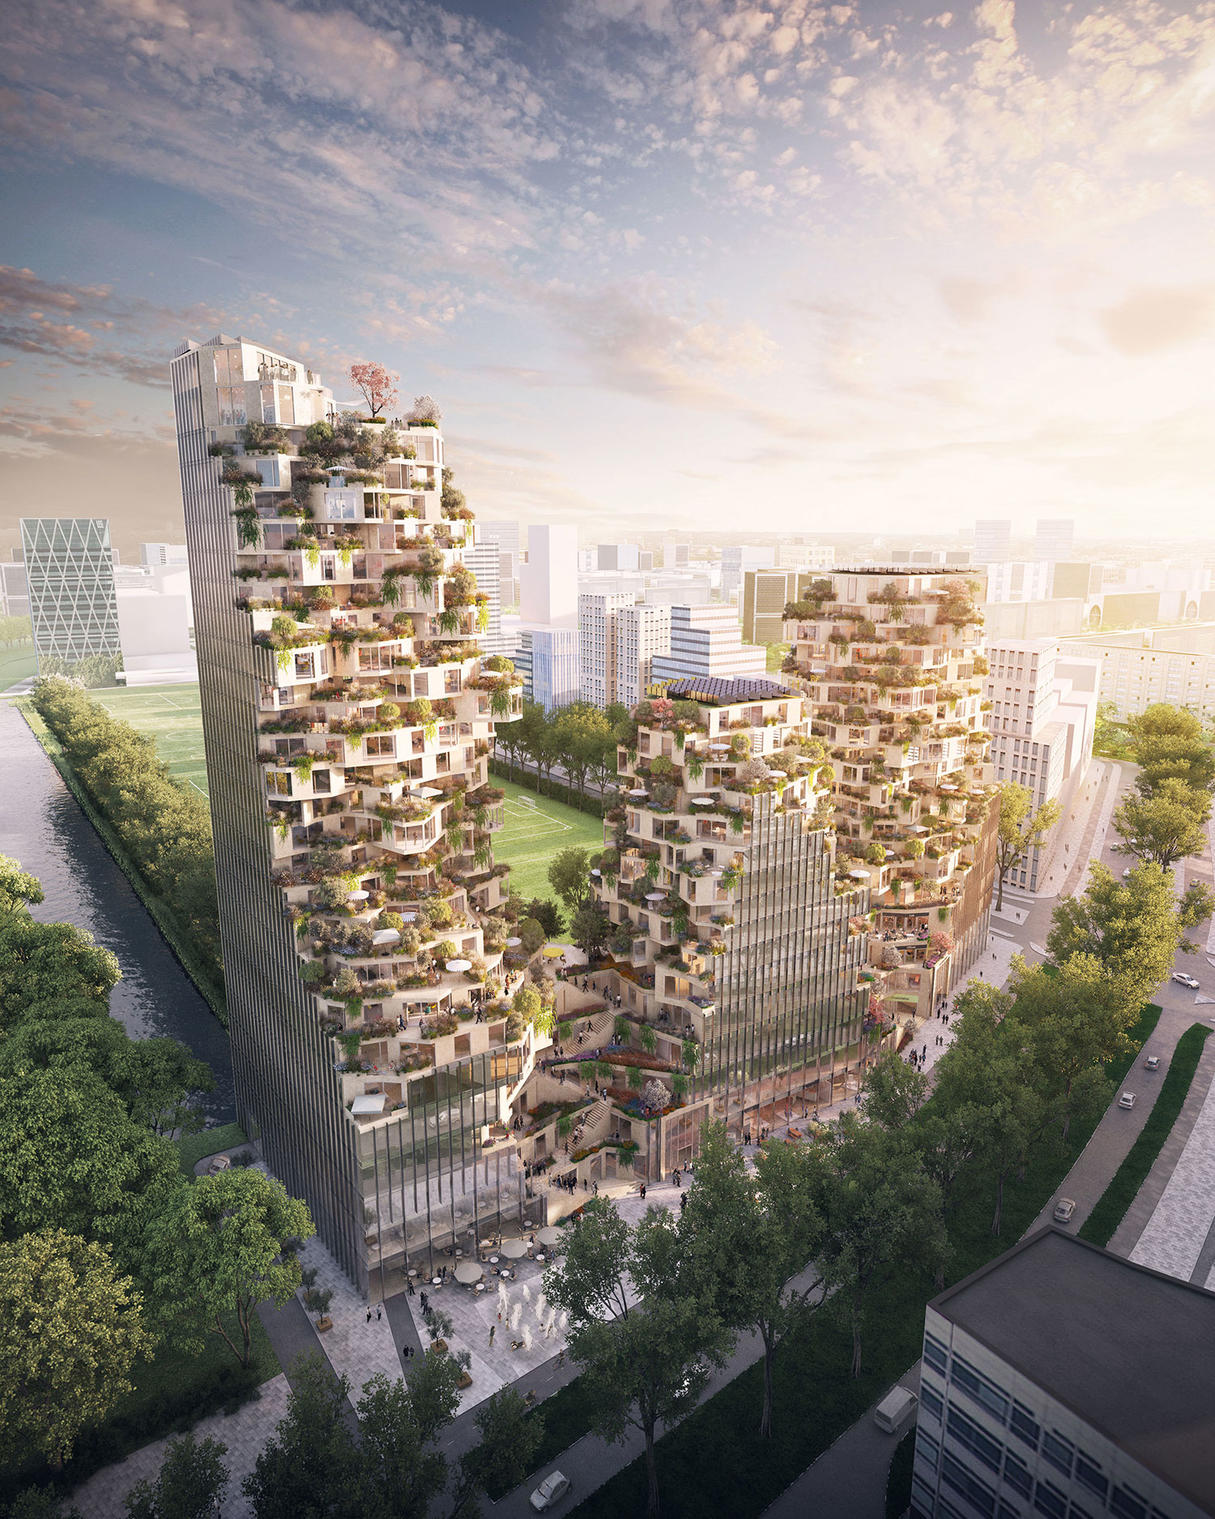 What this mvrdv rendering says about architecture and the media